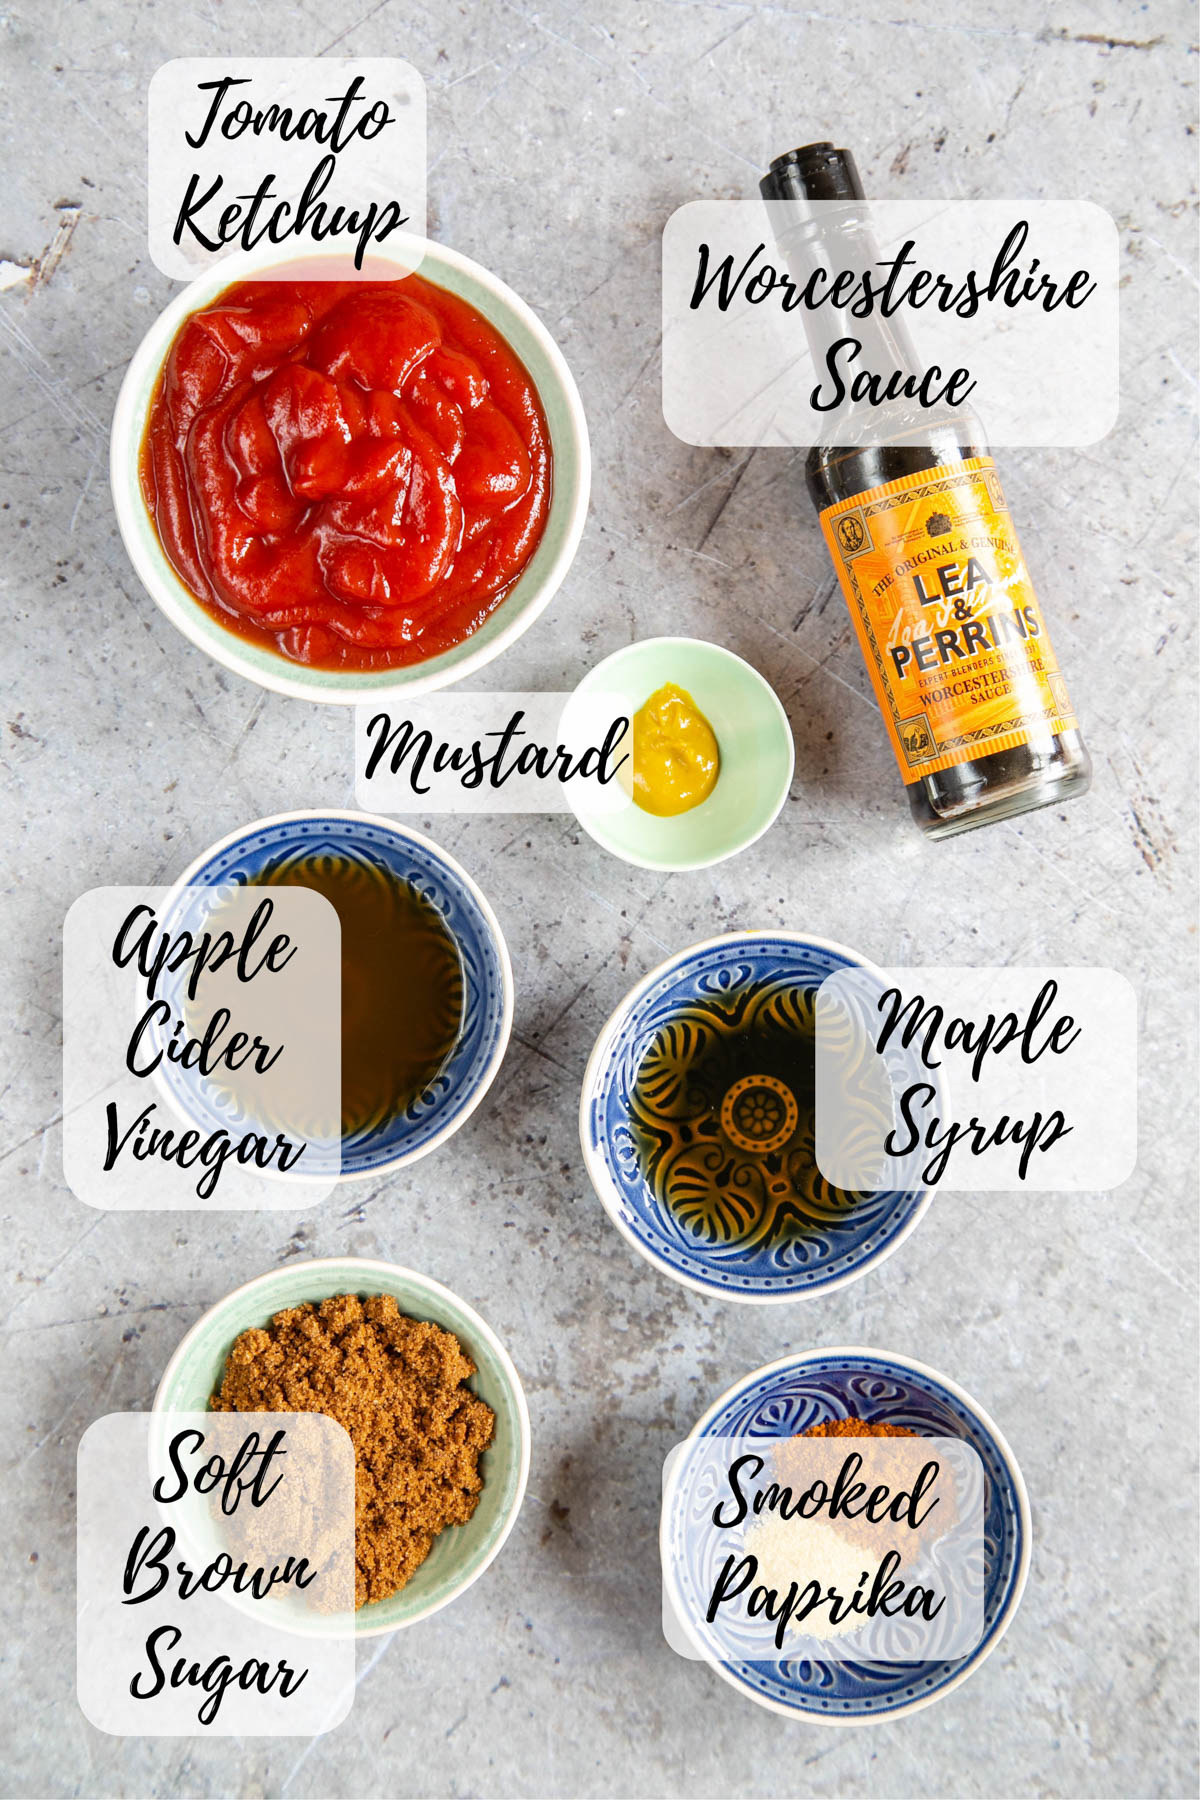 Ingredients for barbecue sauce: tomato ketchup, Worcestershire sauce, mustard, apple cider vinegar, maple syrup, soft brown sugar, and smoked paprika.